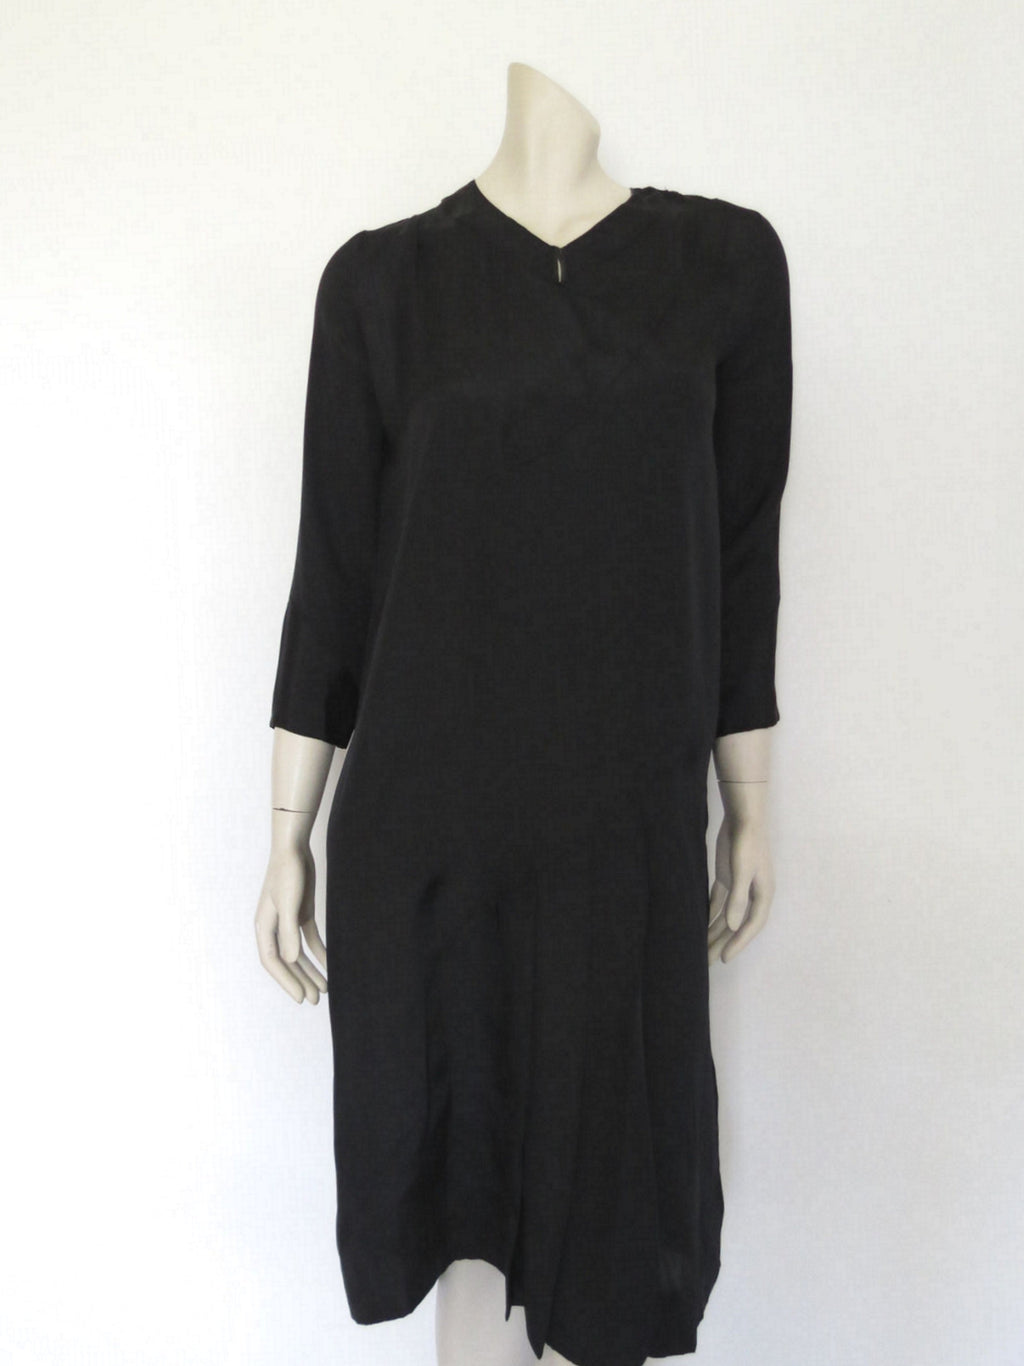 1920s vintage black silk dress with front pleats